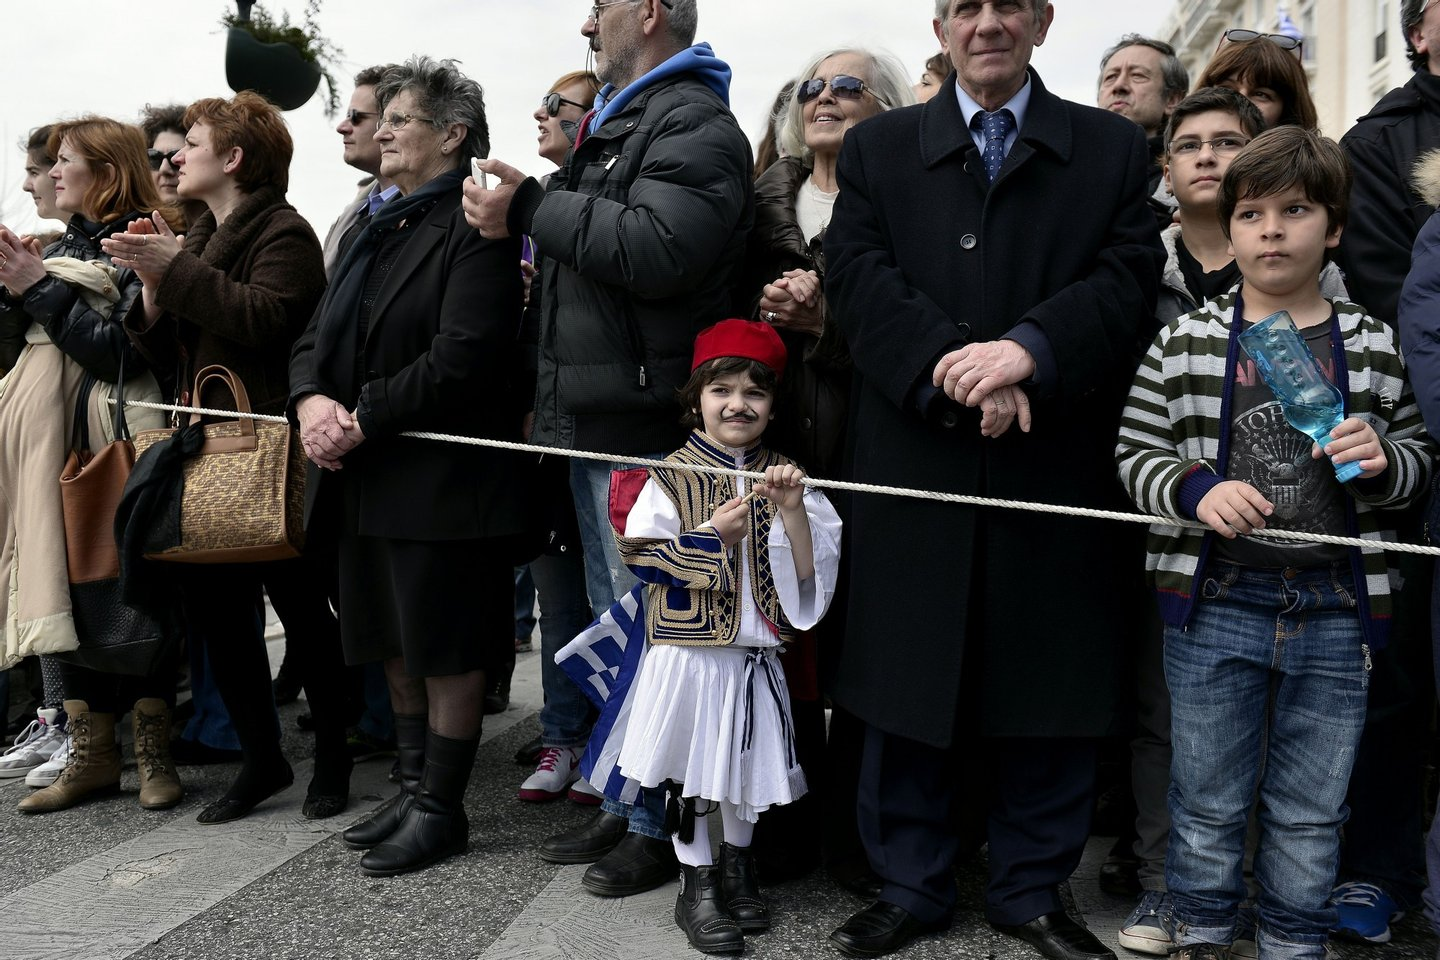 A boy dressed in Greek traditional costume holds a Greek flag, as he watches the student parade on the eve of Greece's Independence day, commemorating the 1821 start of the war against the Ottoman rule on March 24, 2015.  AFP PHOTO/ LOUISA GOULIAMAKI        (Photo credit should read LOUISA GOULIAMAKI/AFP/Getty Images)